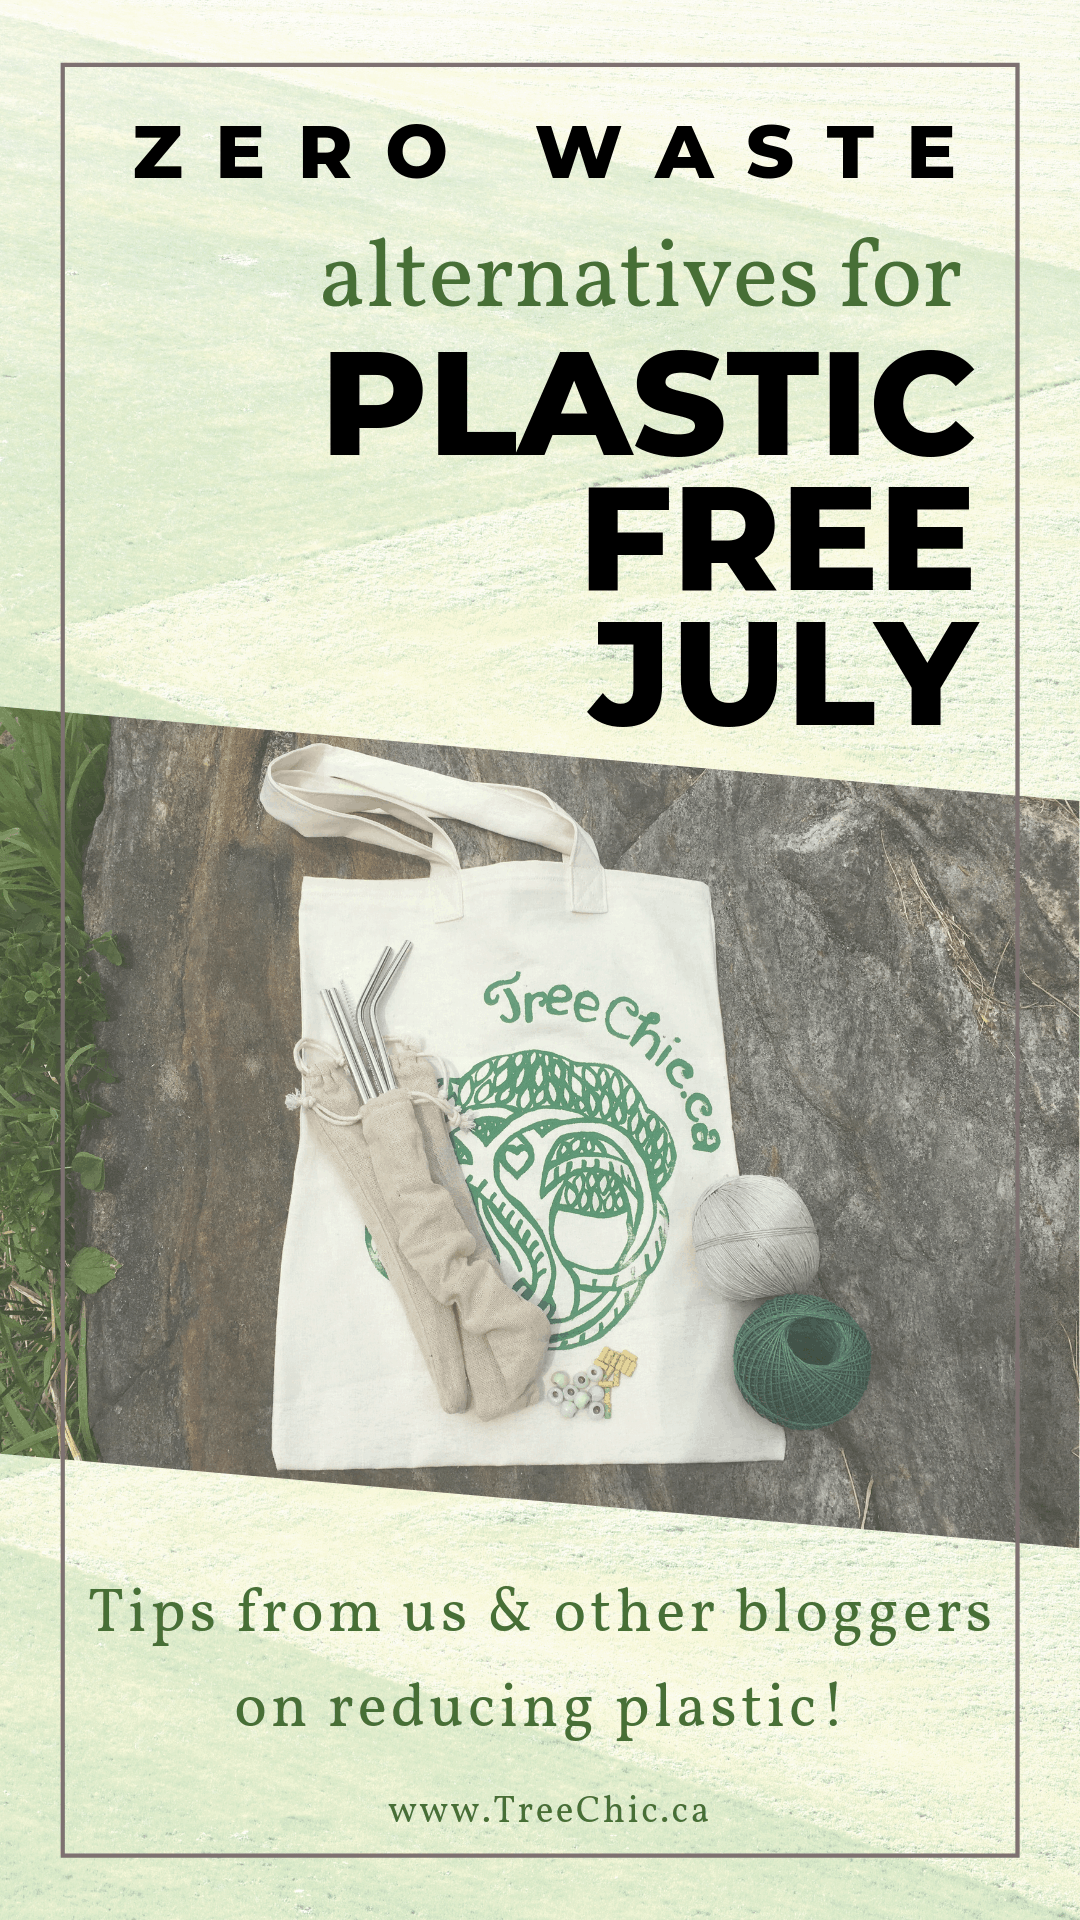 Tips from Tree Chic & other bloggers on reducing plastic!